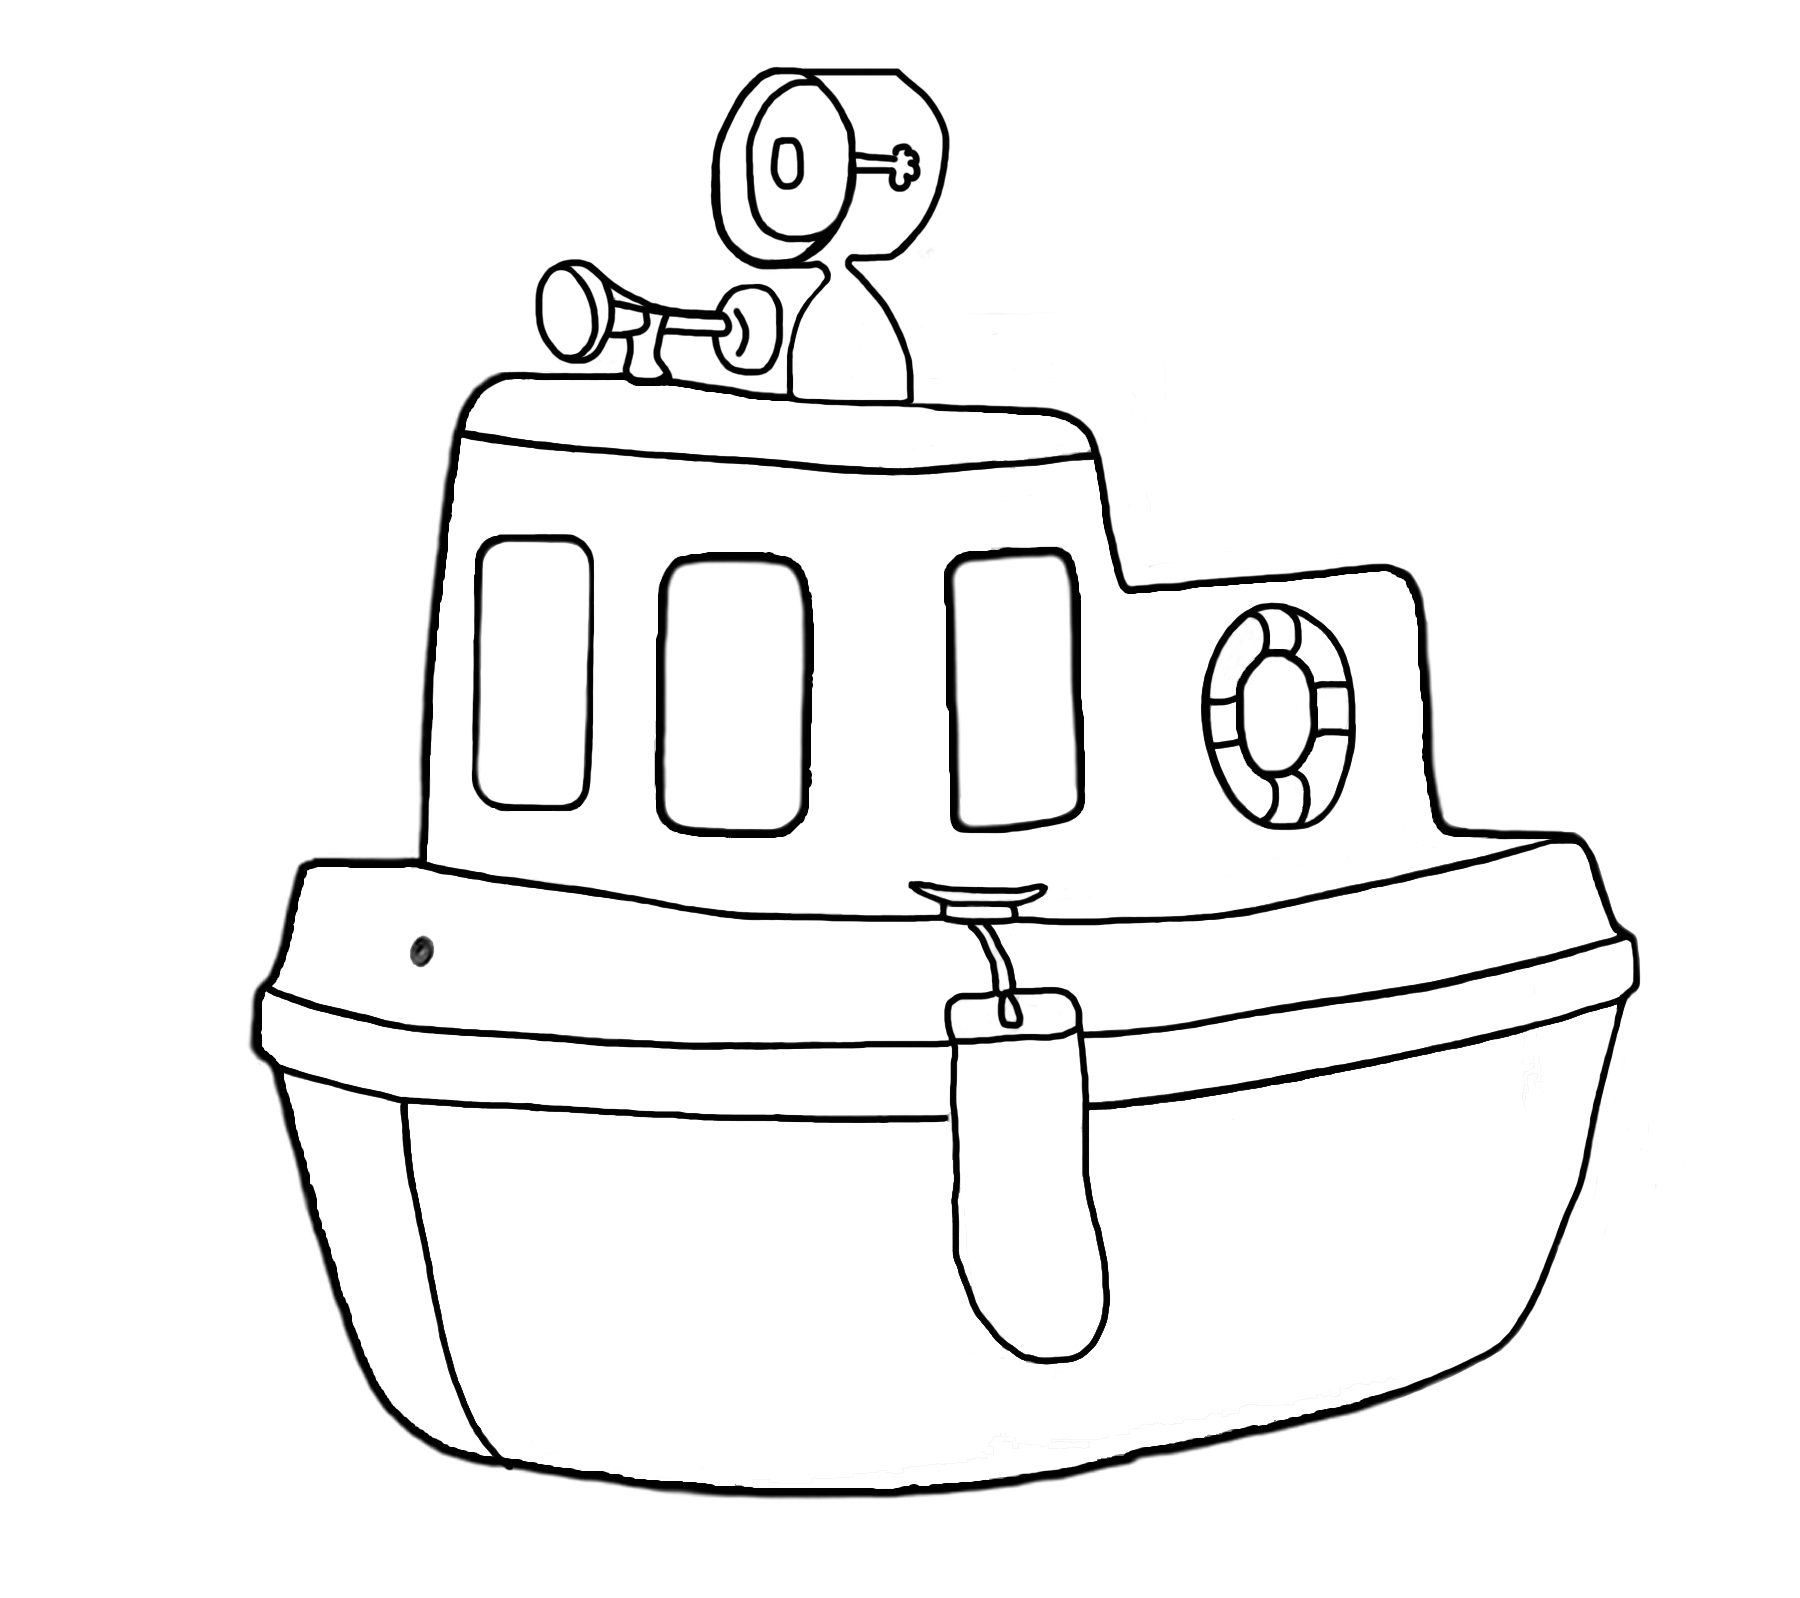 pin Tugboat clipart black and white #8 - Tugboat PNG Black And White